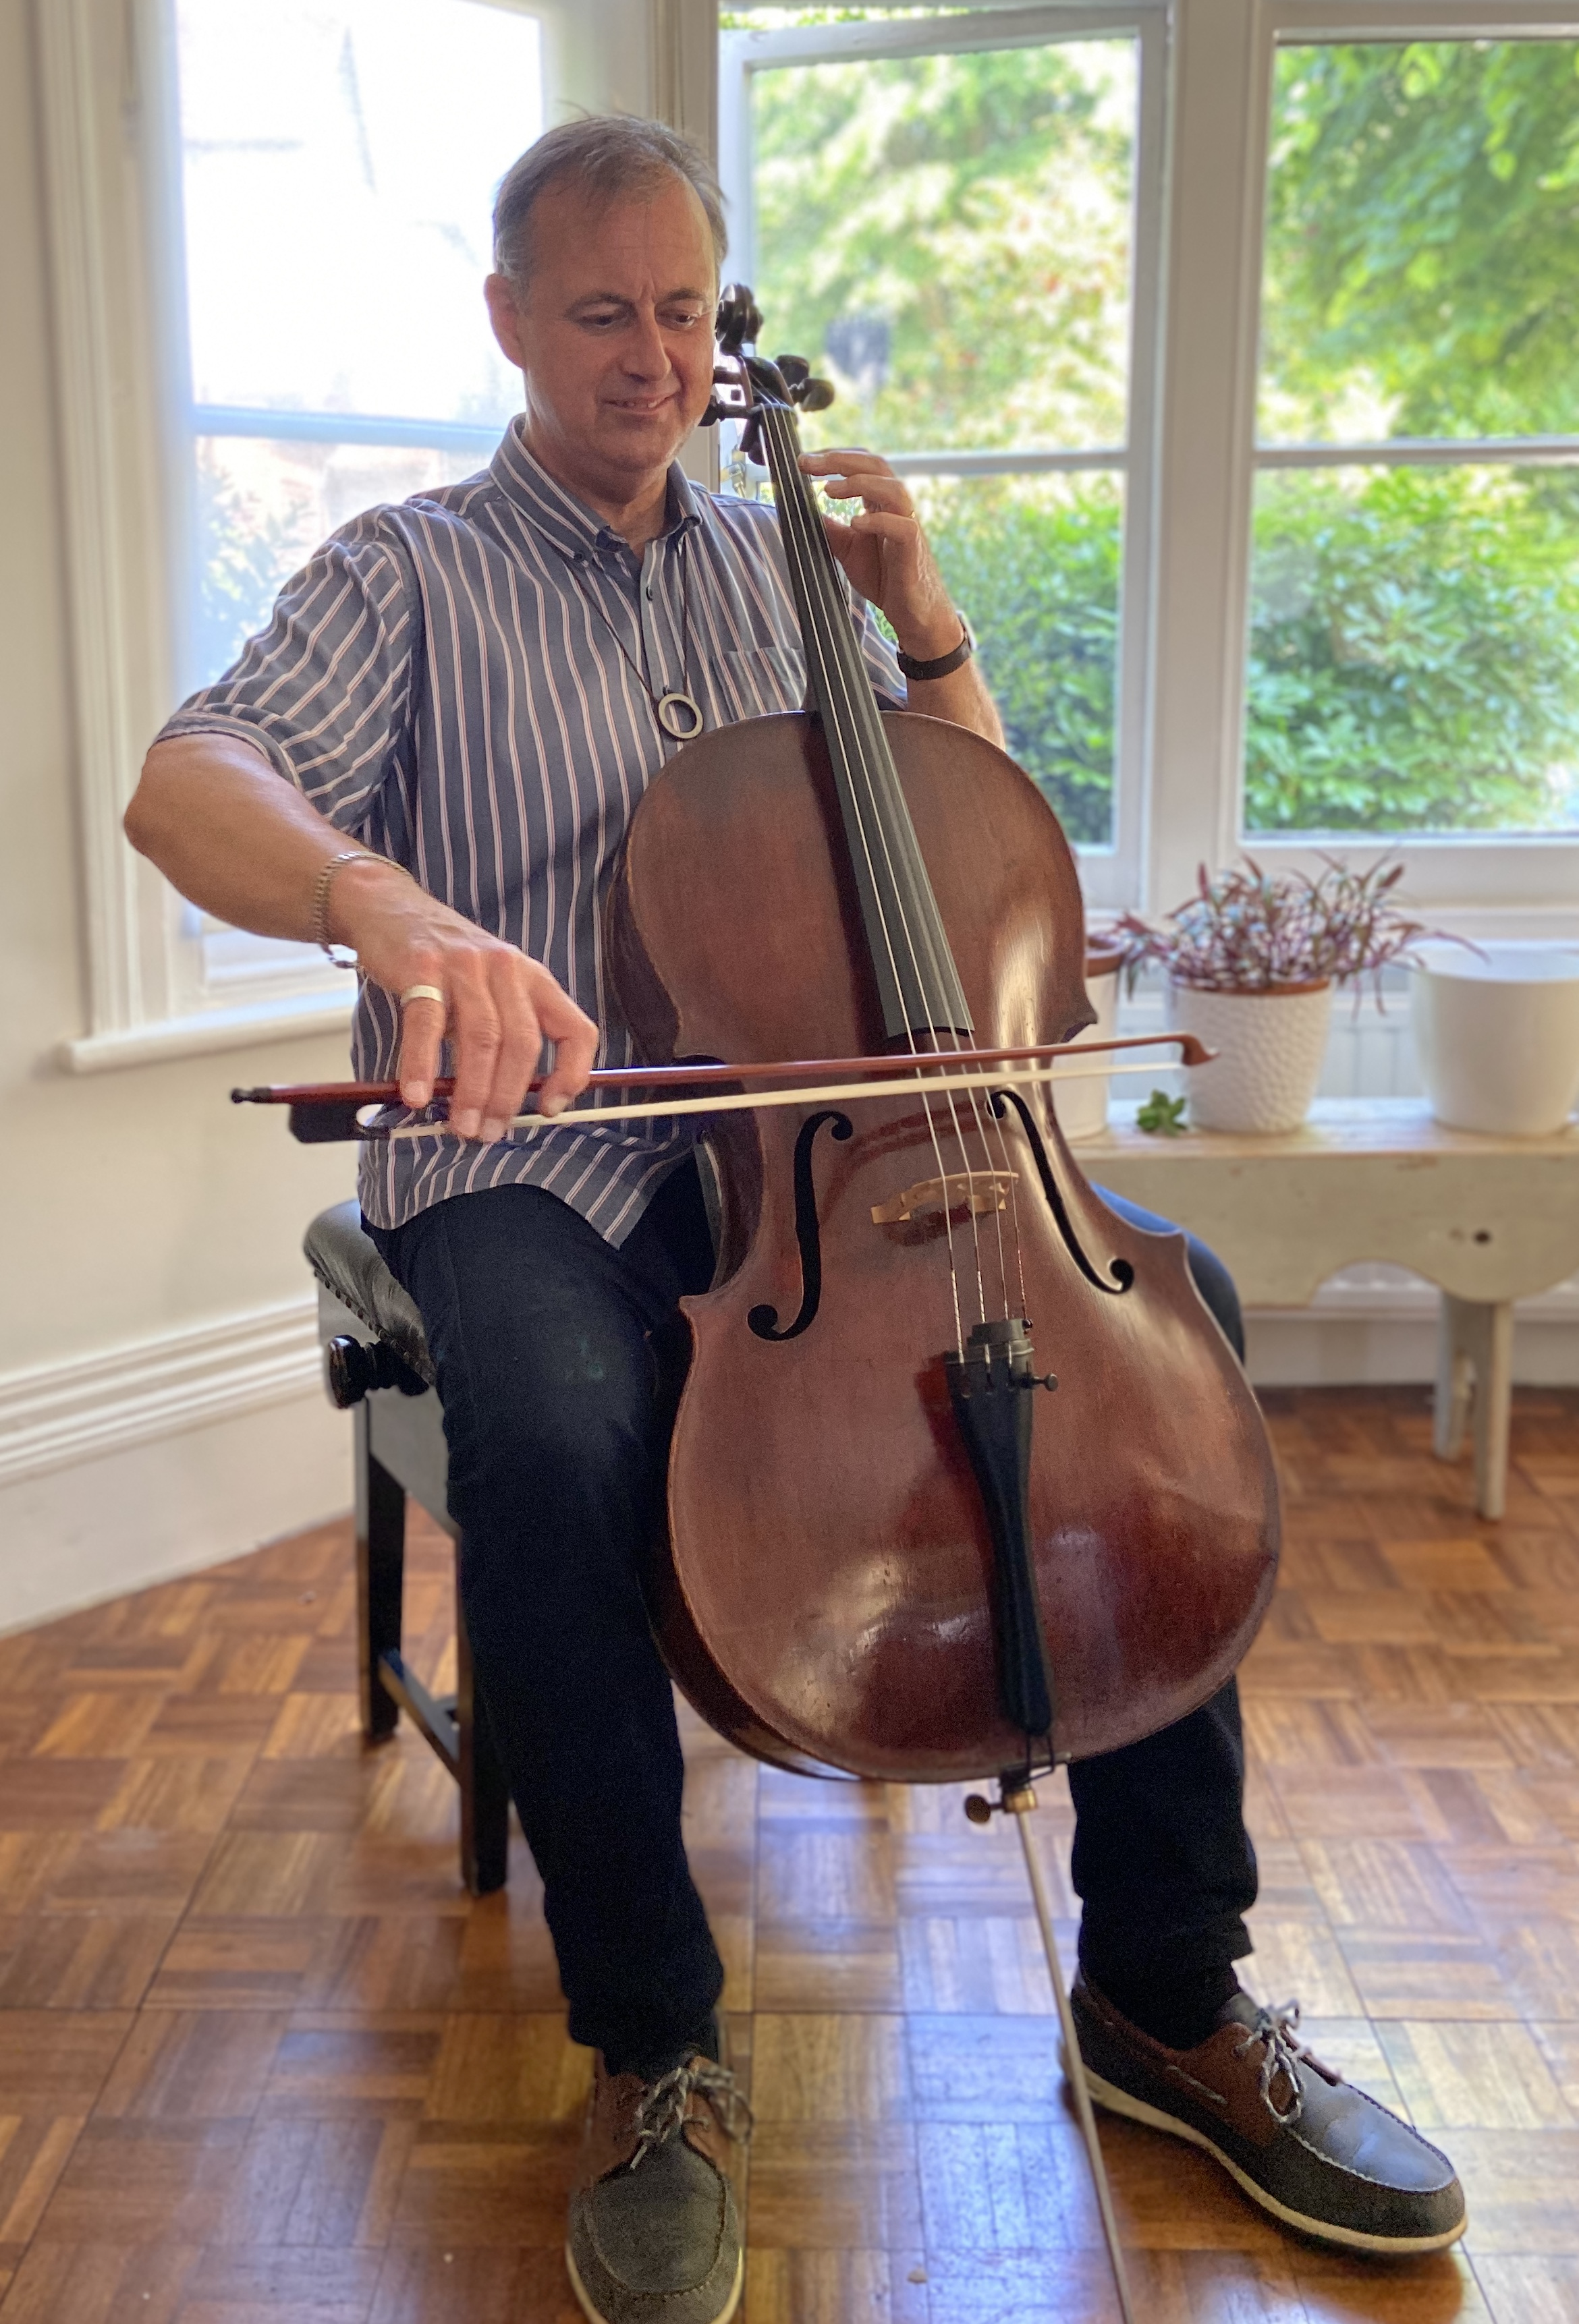 Above: Paul Woodmansterne's cello playing during lockdown has been one of the pleasures.